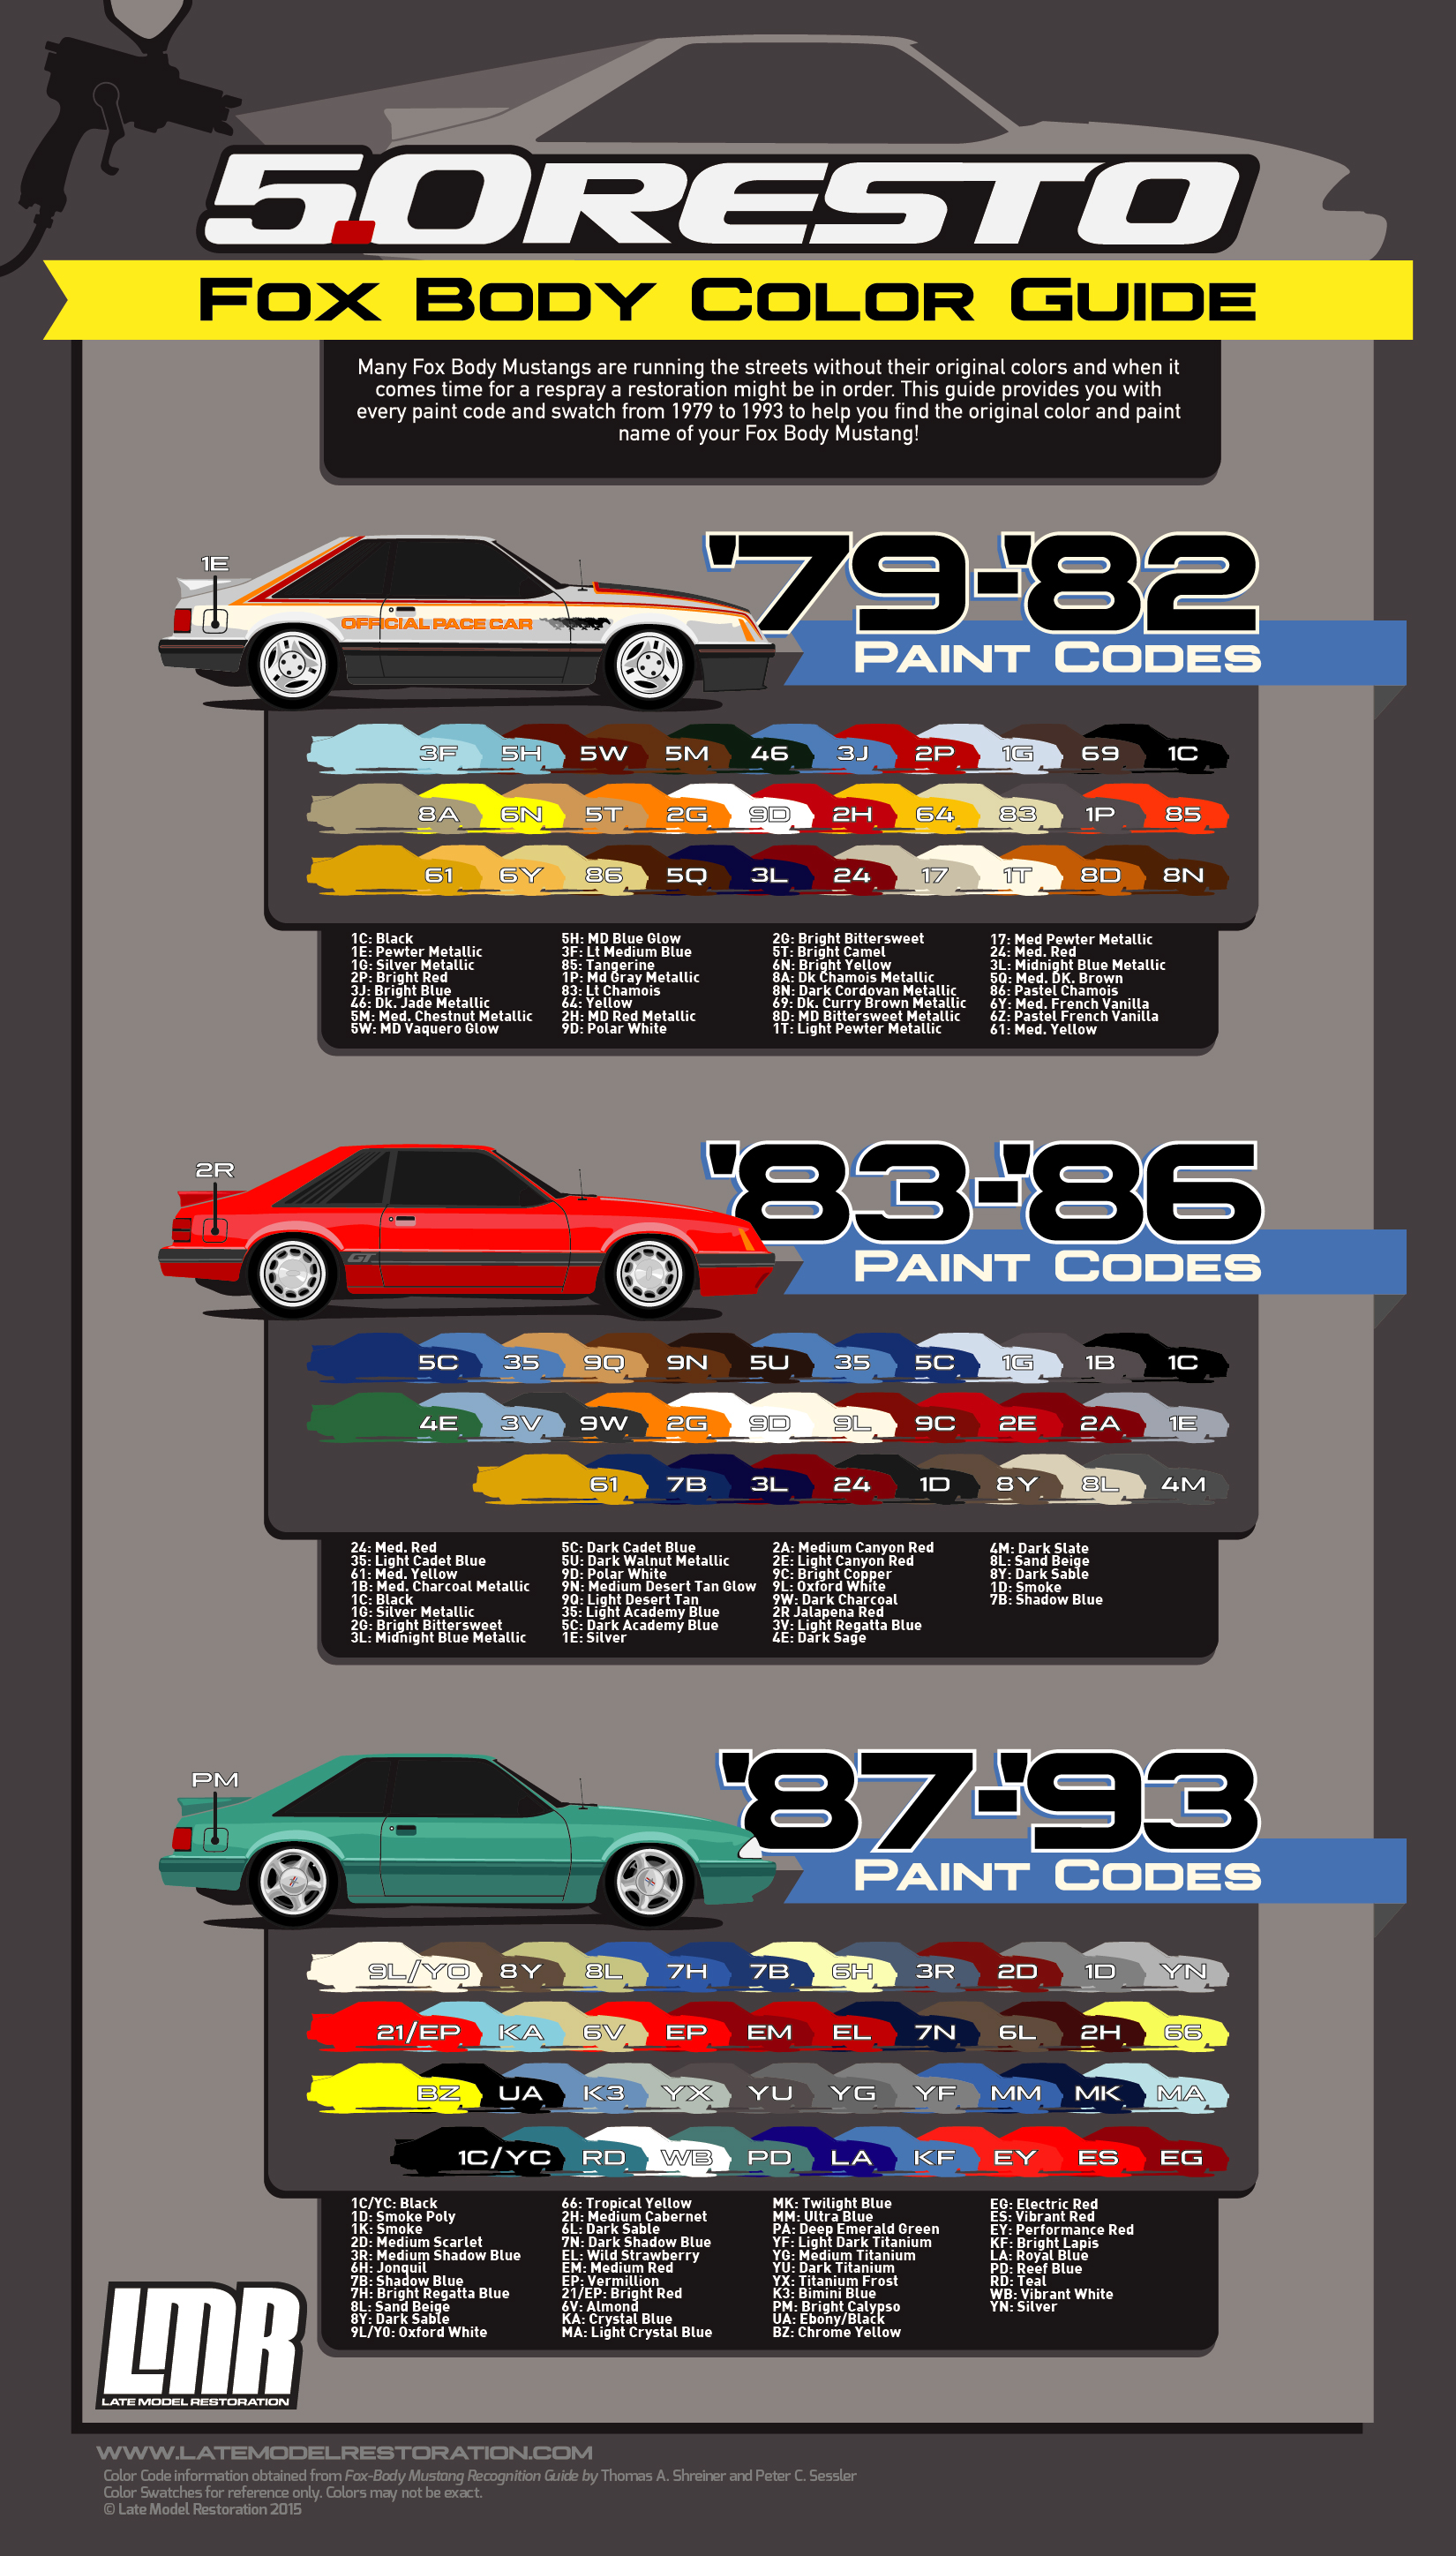 Fox Body Parts >> Fox Body Paint Code Guide Lmr Com